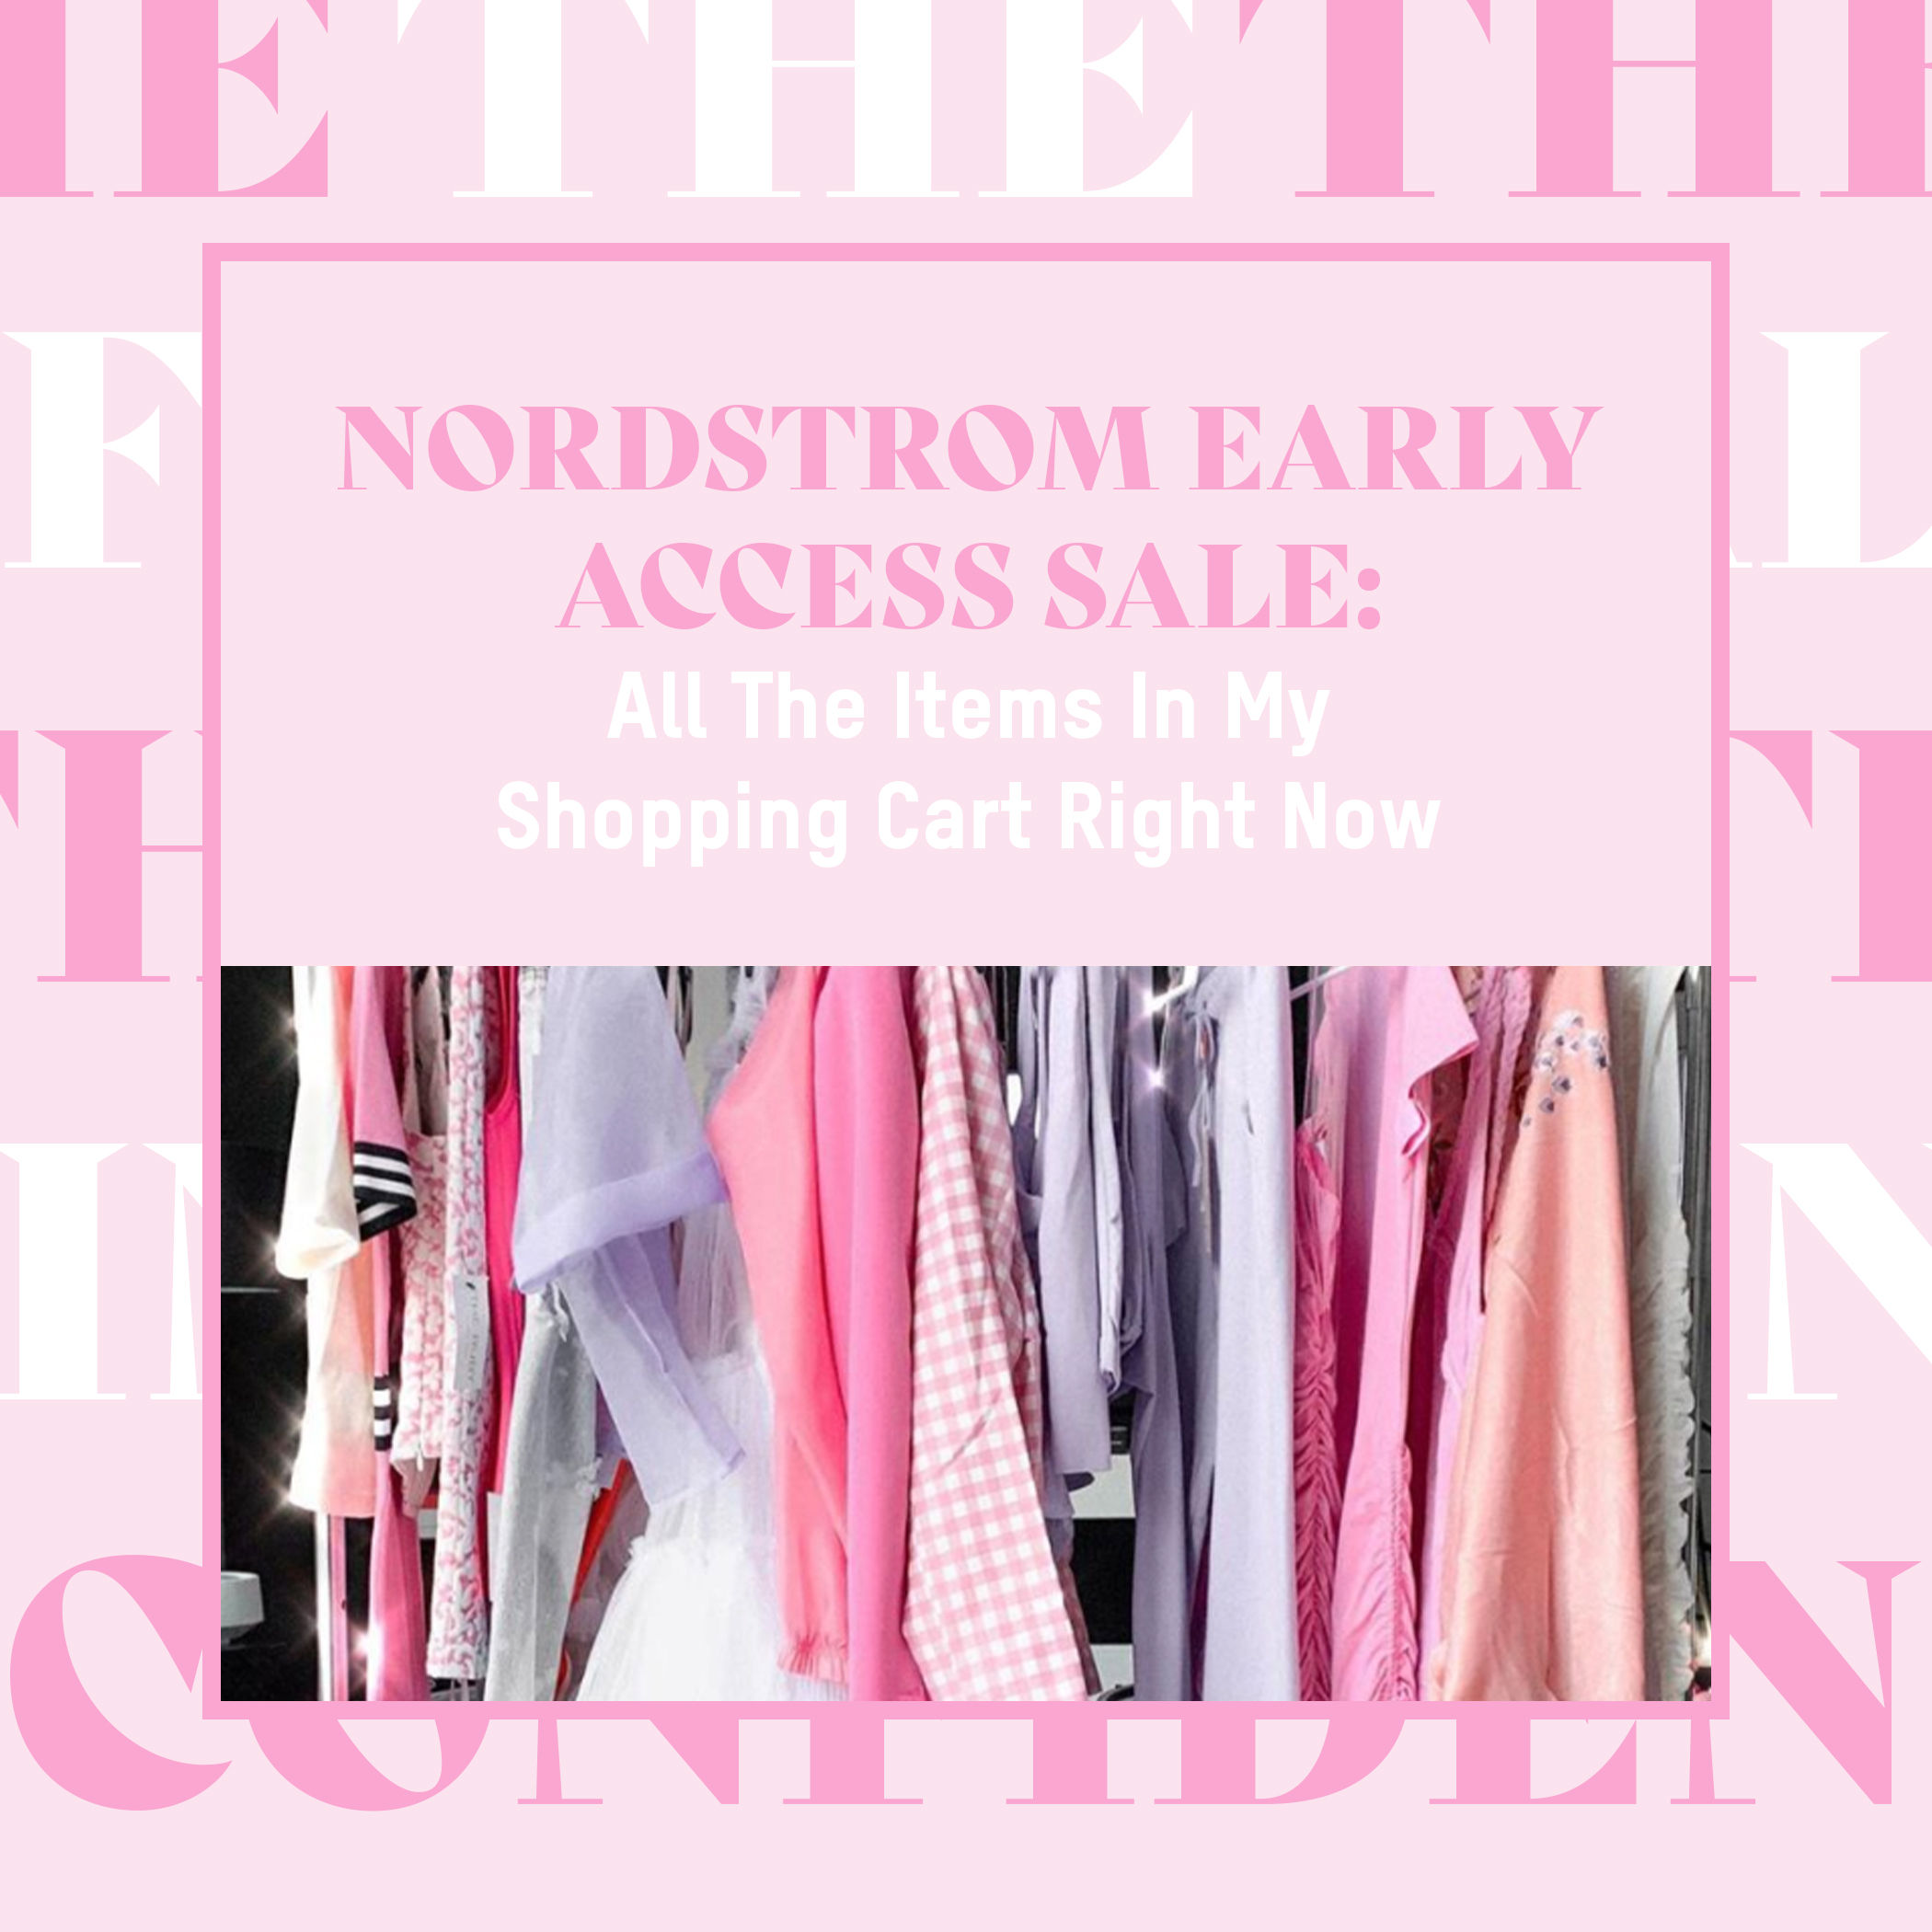 NORDSTROM EARLY ACCESS SALE: All The Items In My Shopping Cart Right Now